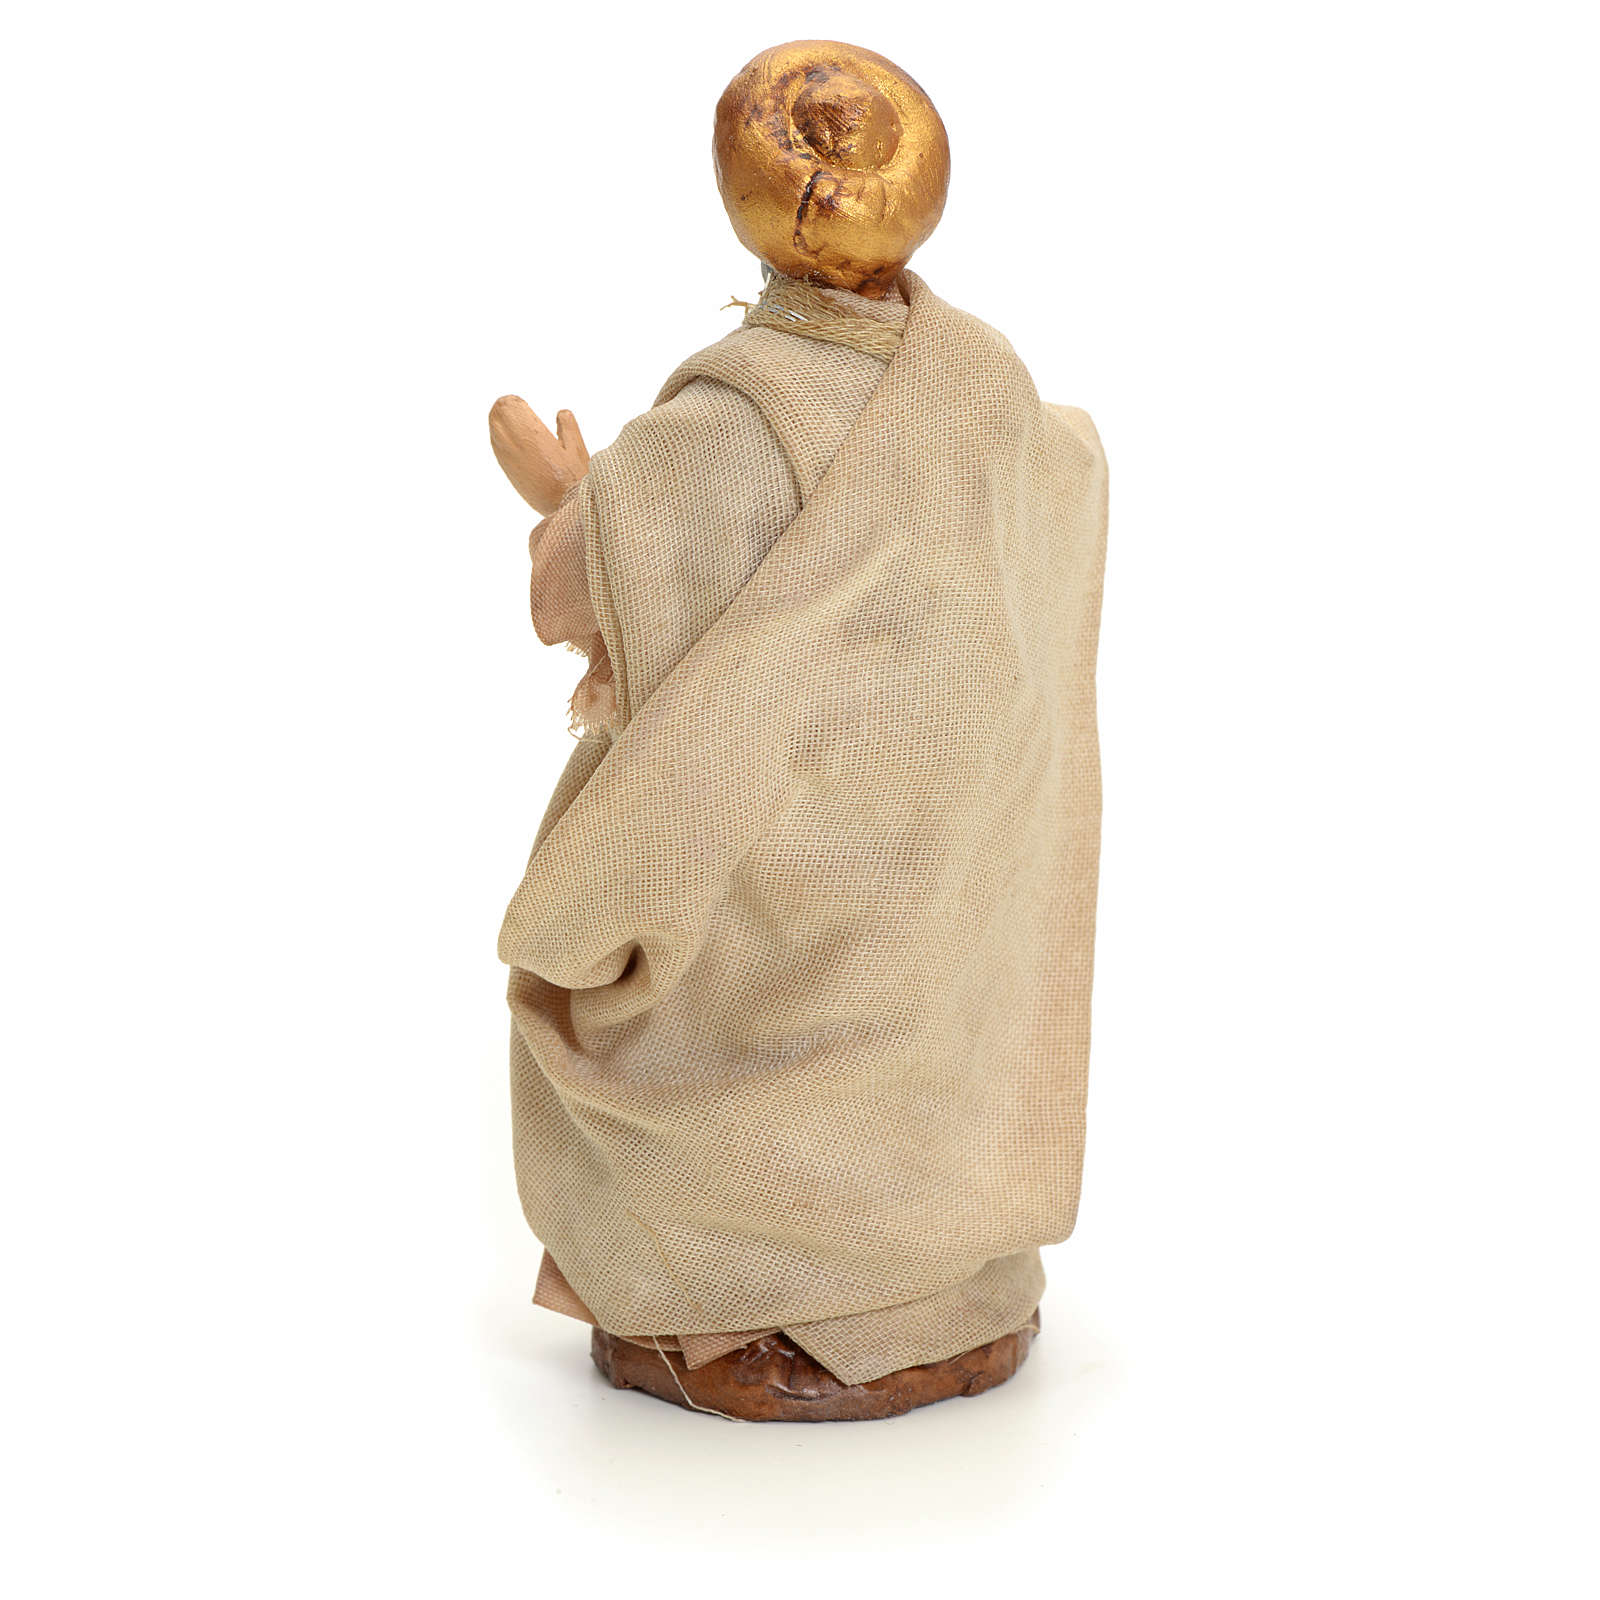 Neapolitan nativity figurine, Arabian man walking, 8cm 4